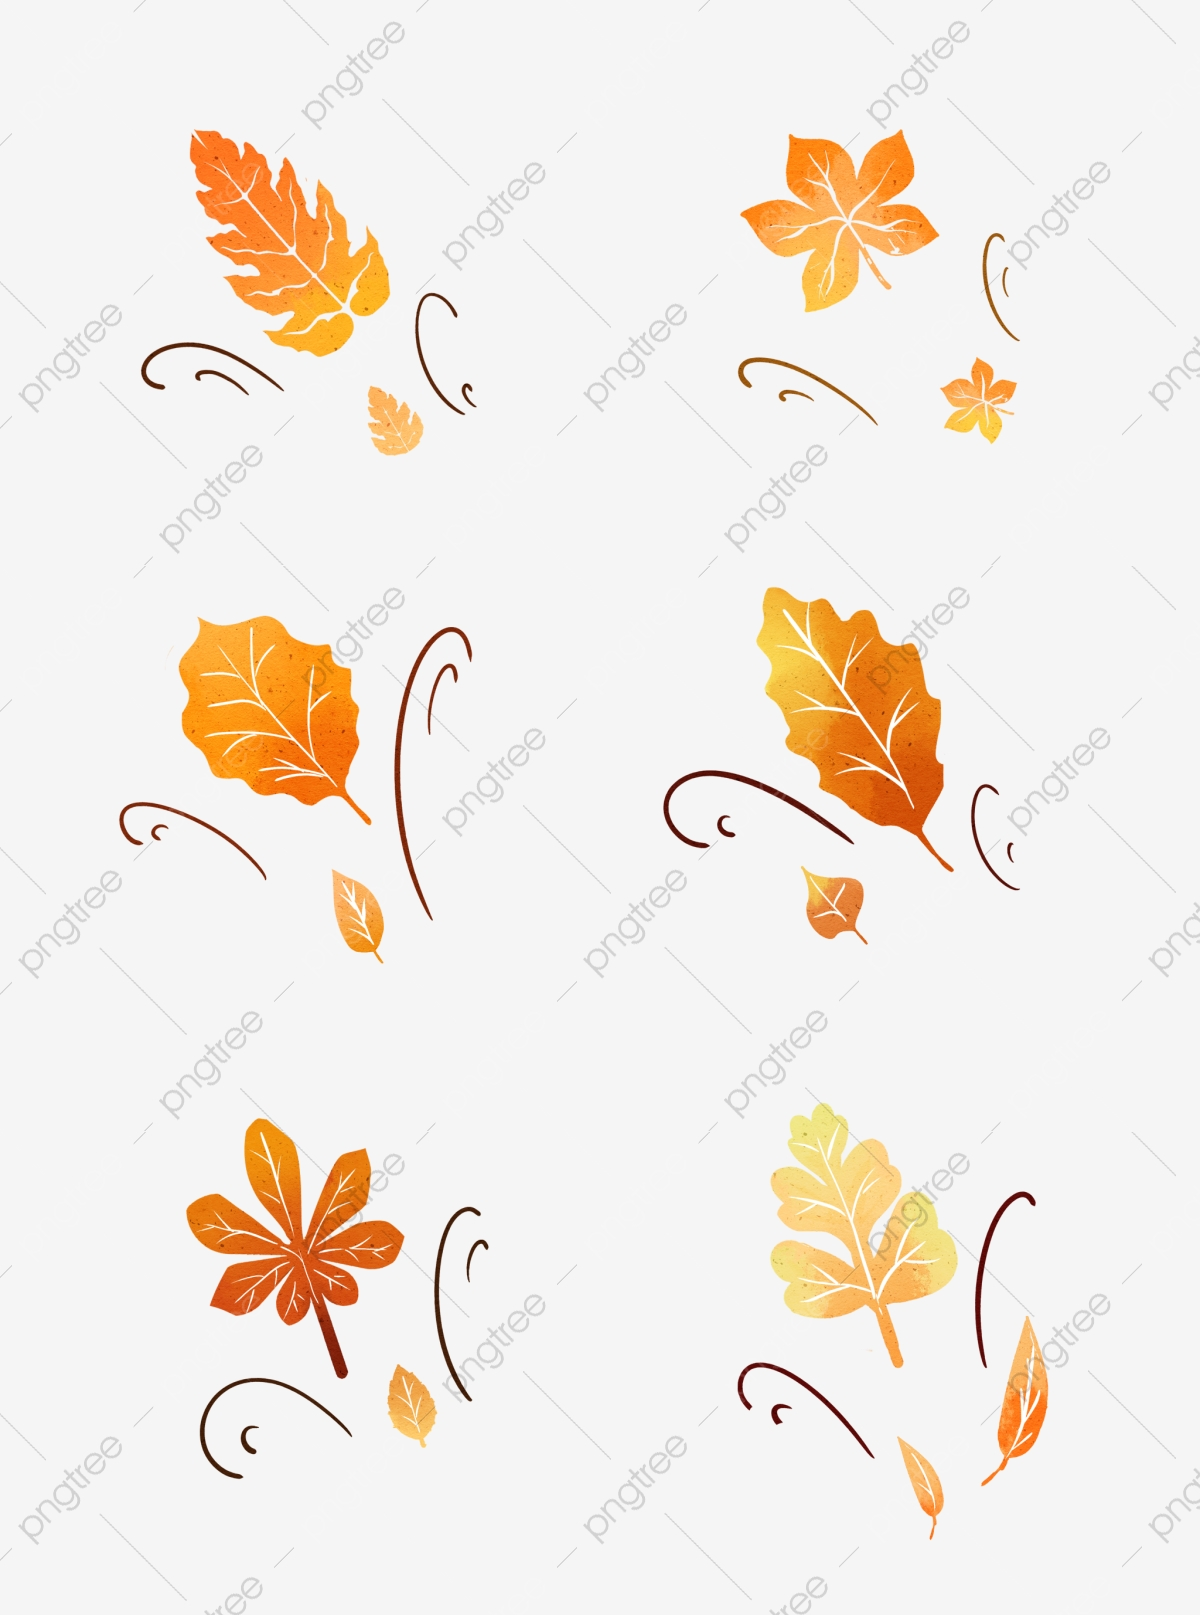 Autumn Wind Blowing Leaves Hand Drawn Elements Autumn Autumn Leaves Maple Leaf Png Transparent Clipart Image And Psd File For Free Download